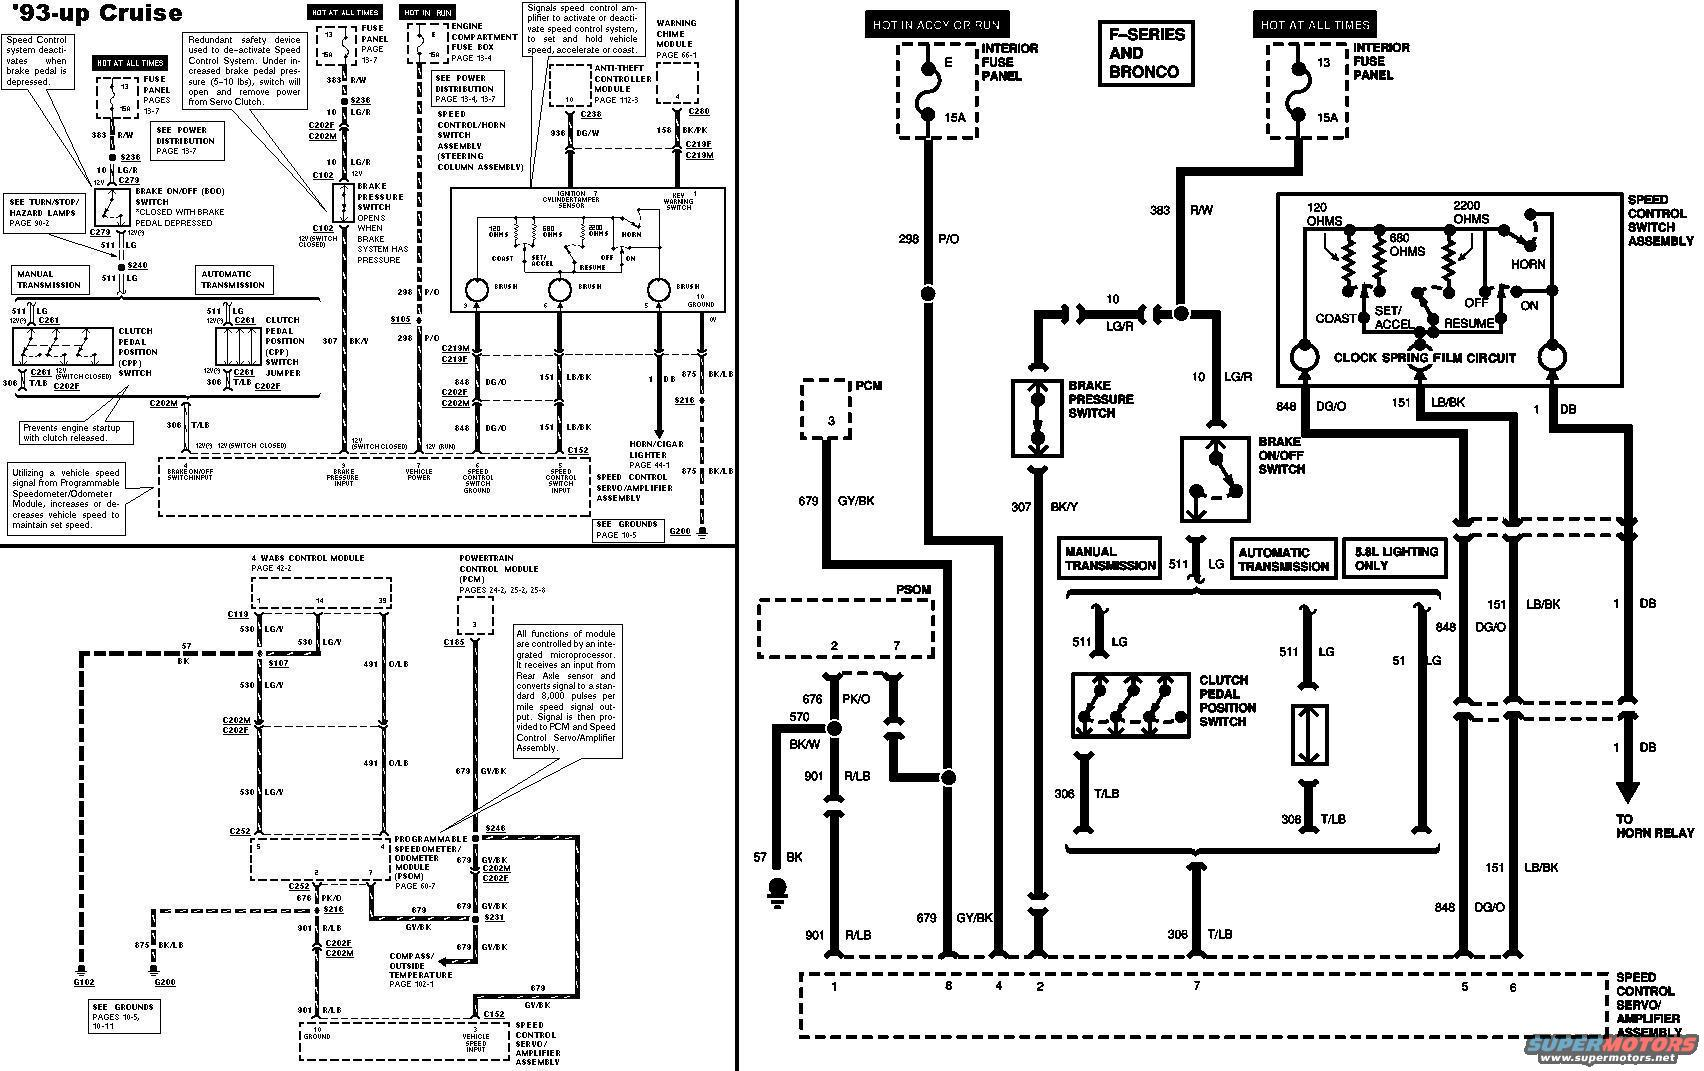 cruise control wiring diagram chinese 4 wheeler 93 ford f250 problem truck